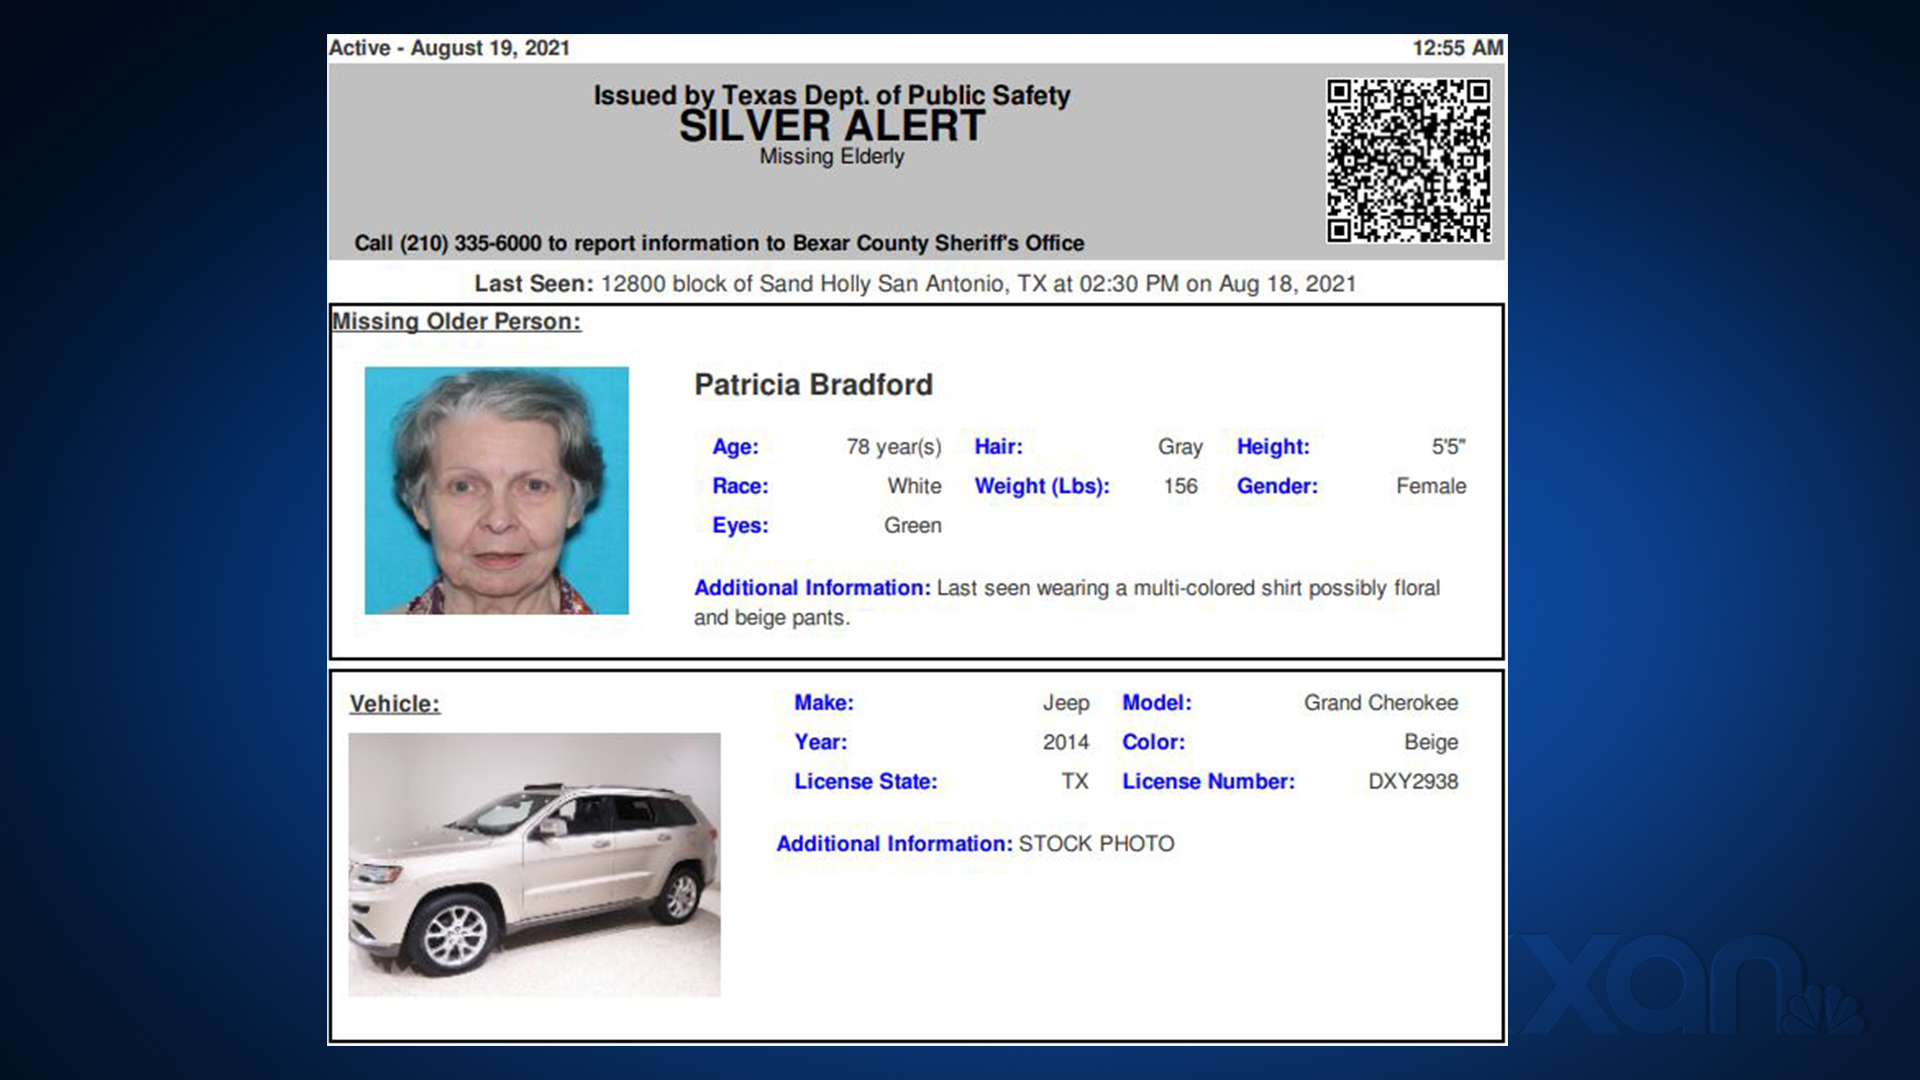 Texas DPS issued this Silver Alert for 78-year-old Patricia Bradford